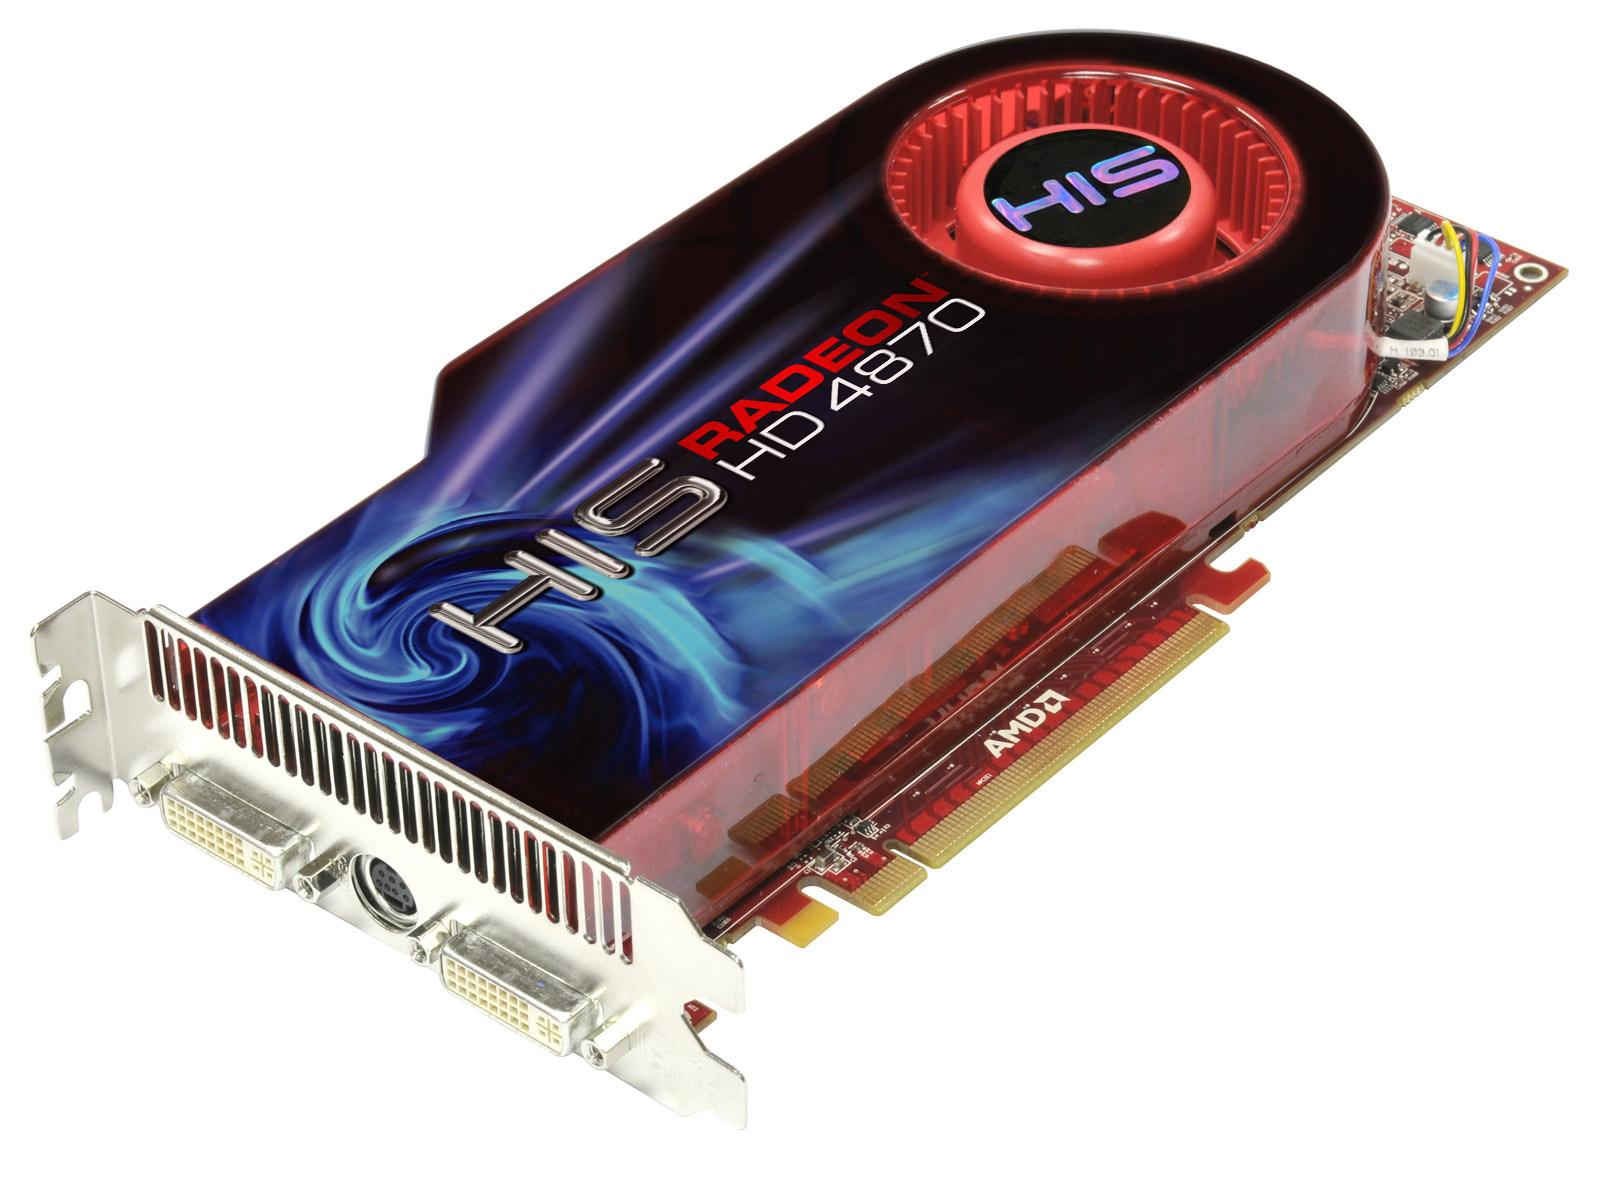 Radeon HD 4870: Specs and Reviews 25